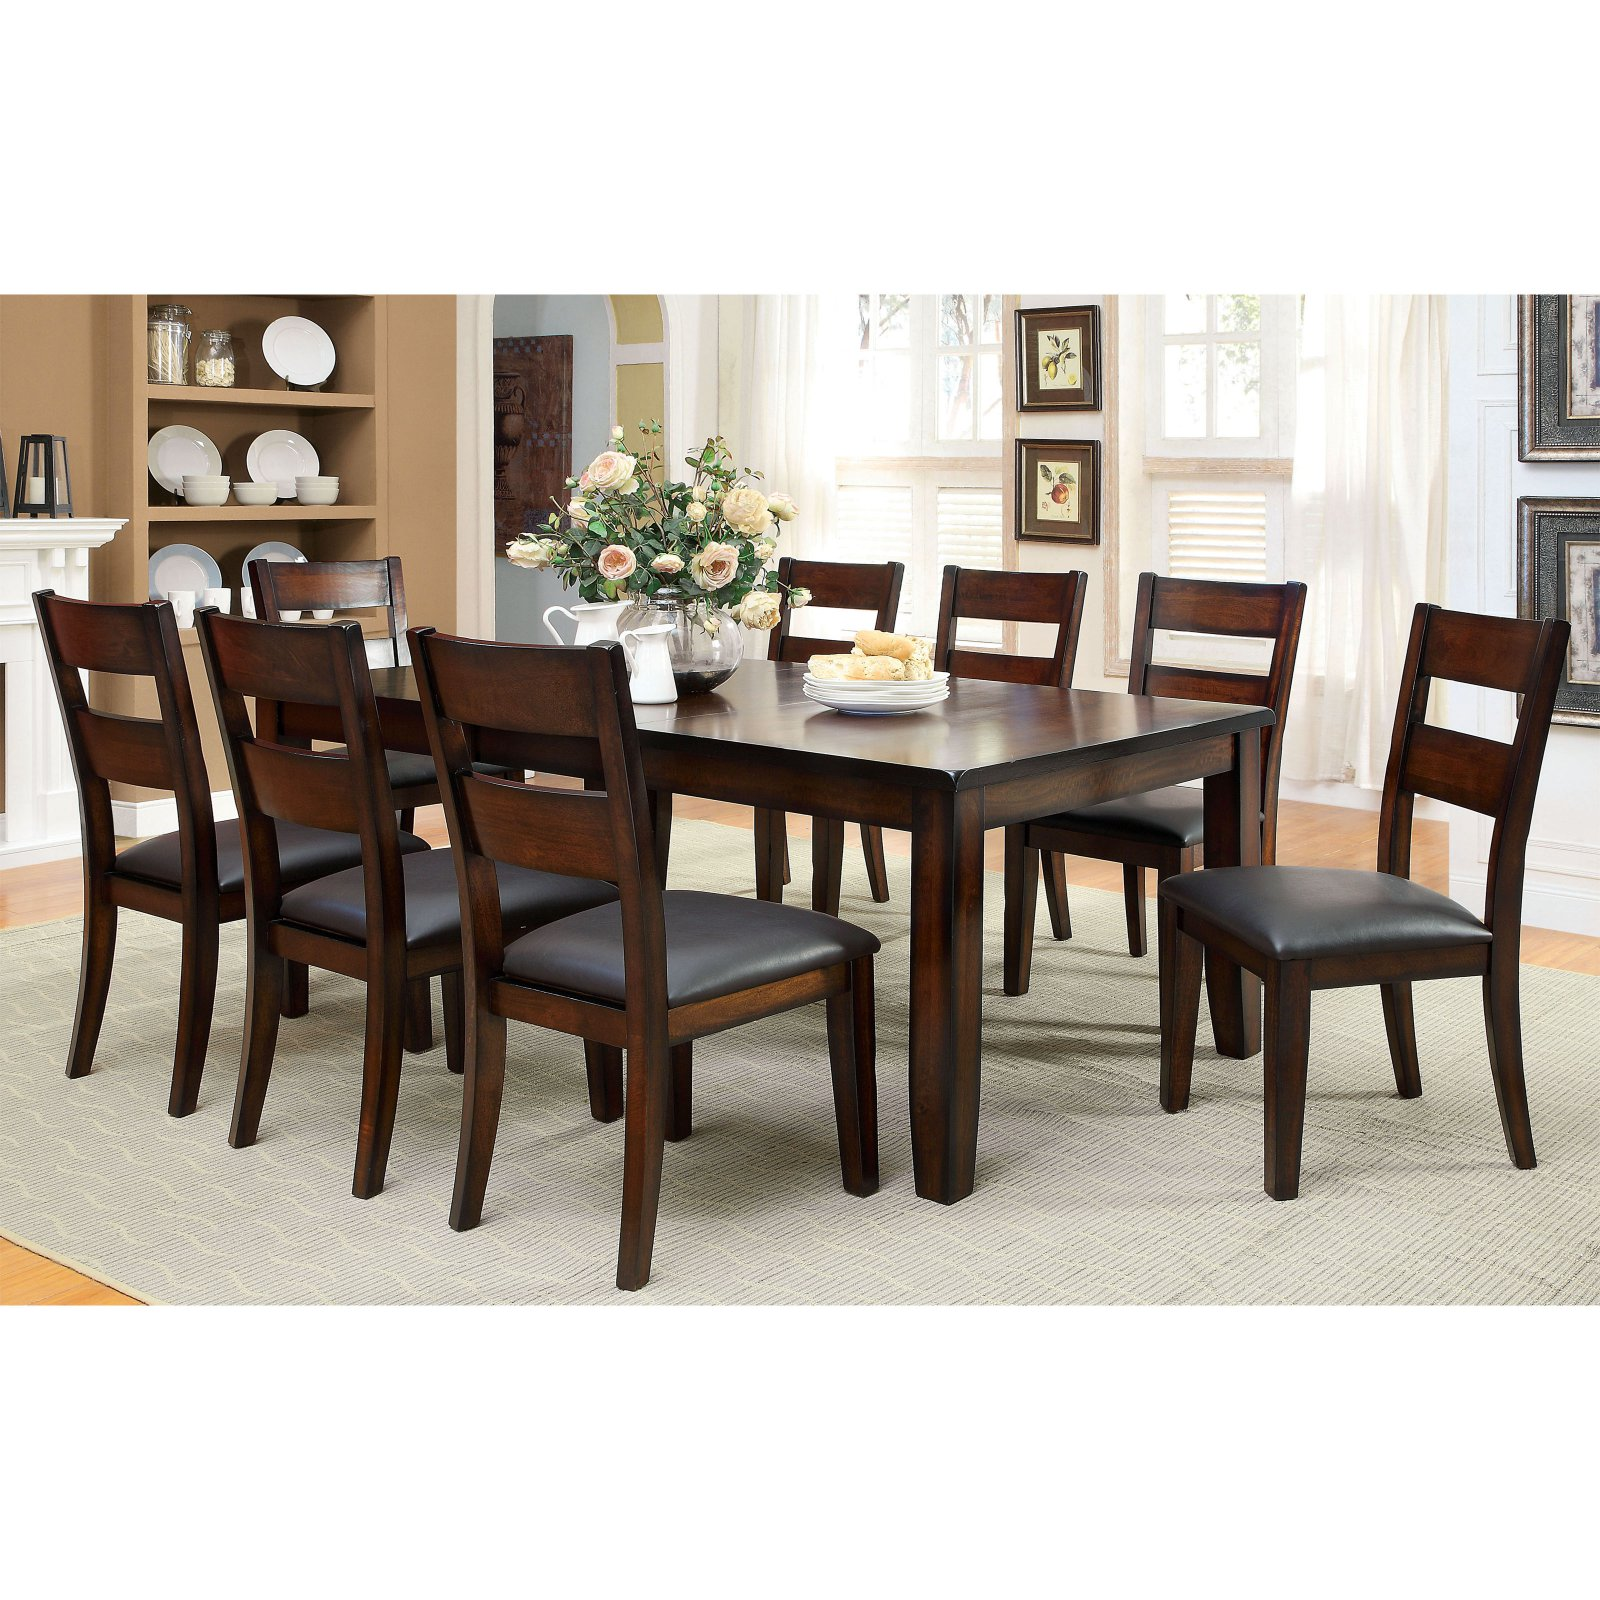 Furniture of America Gibson Bold Dining Table